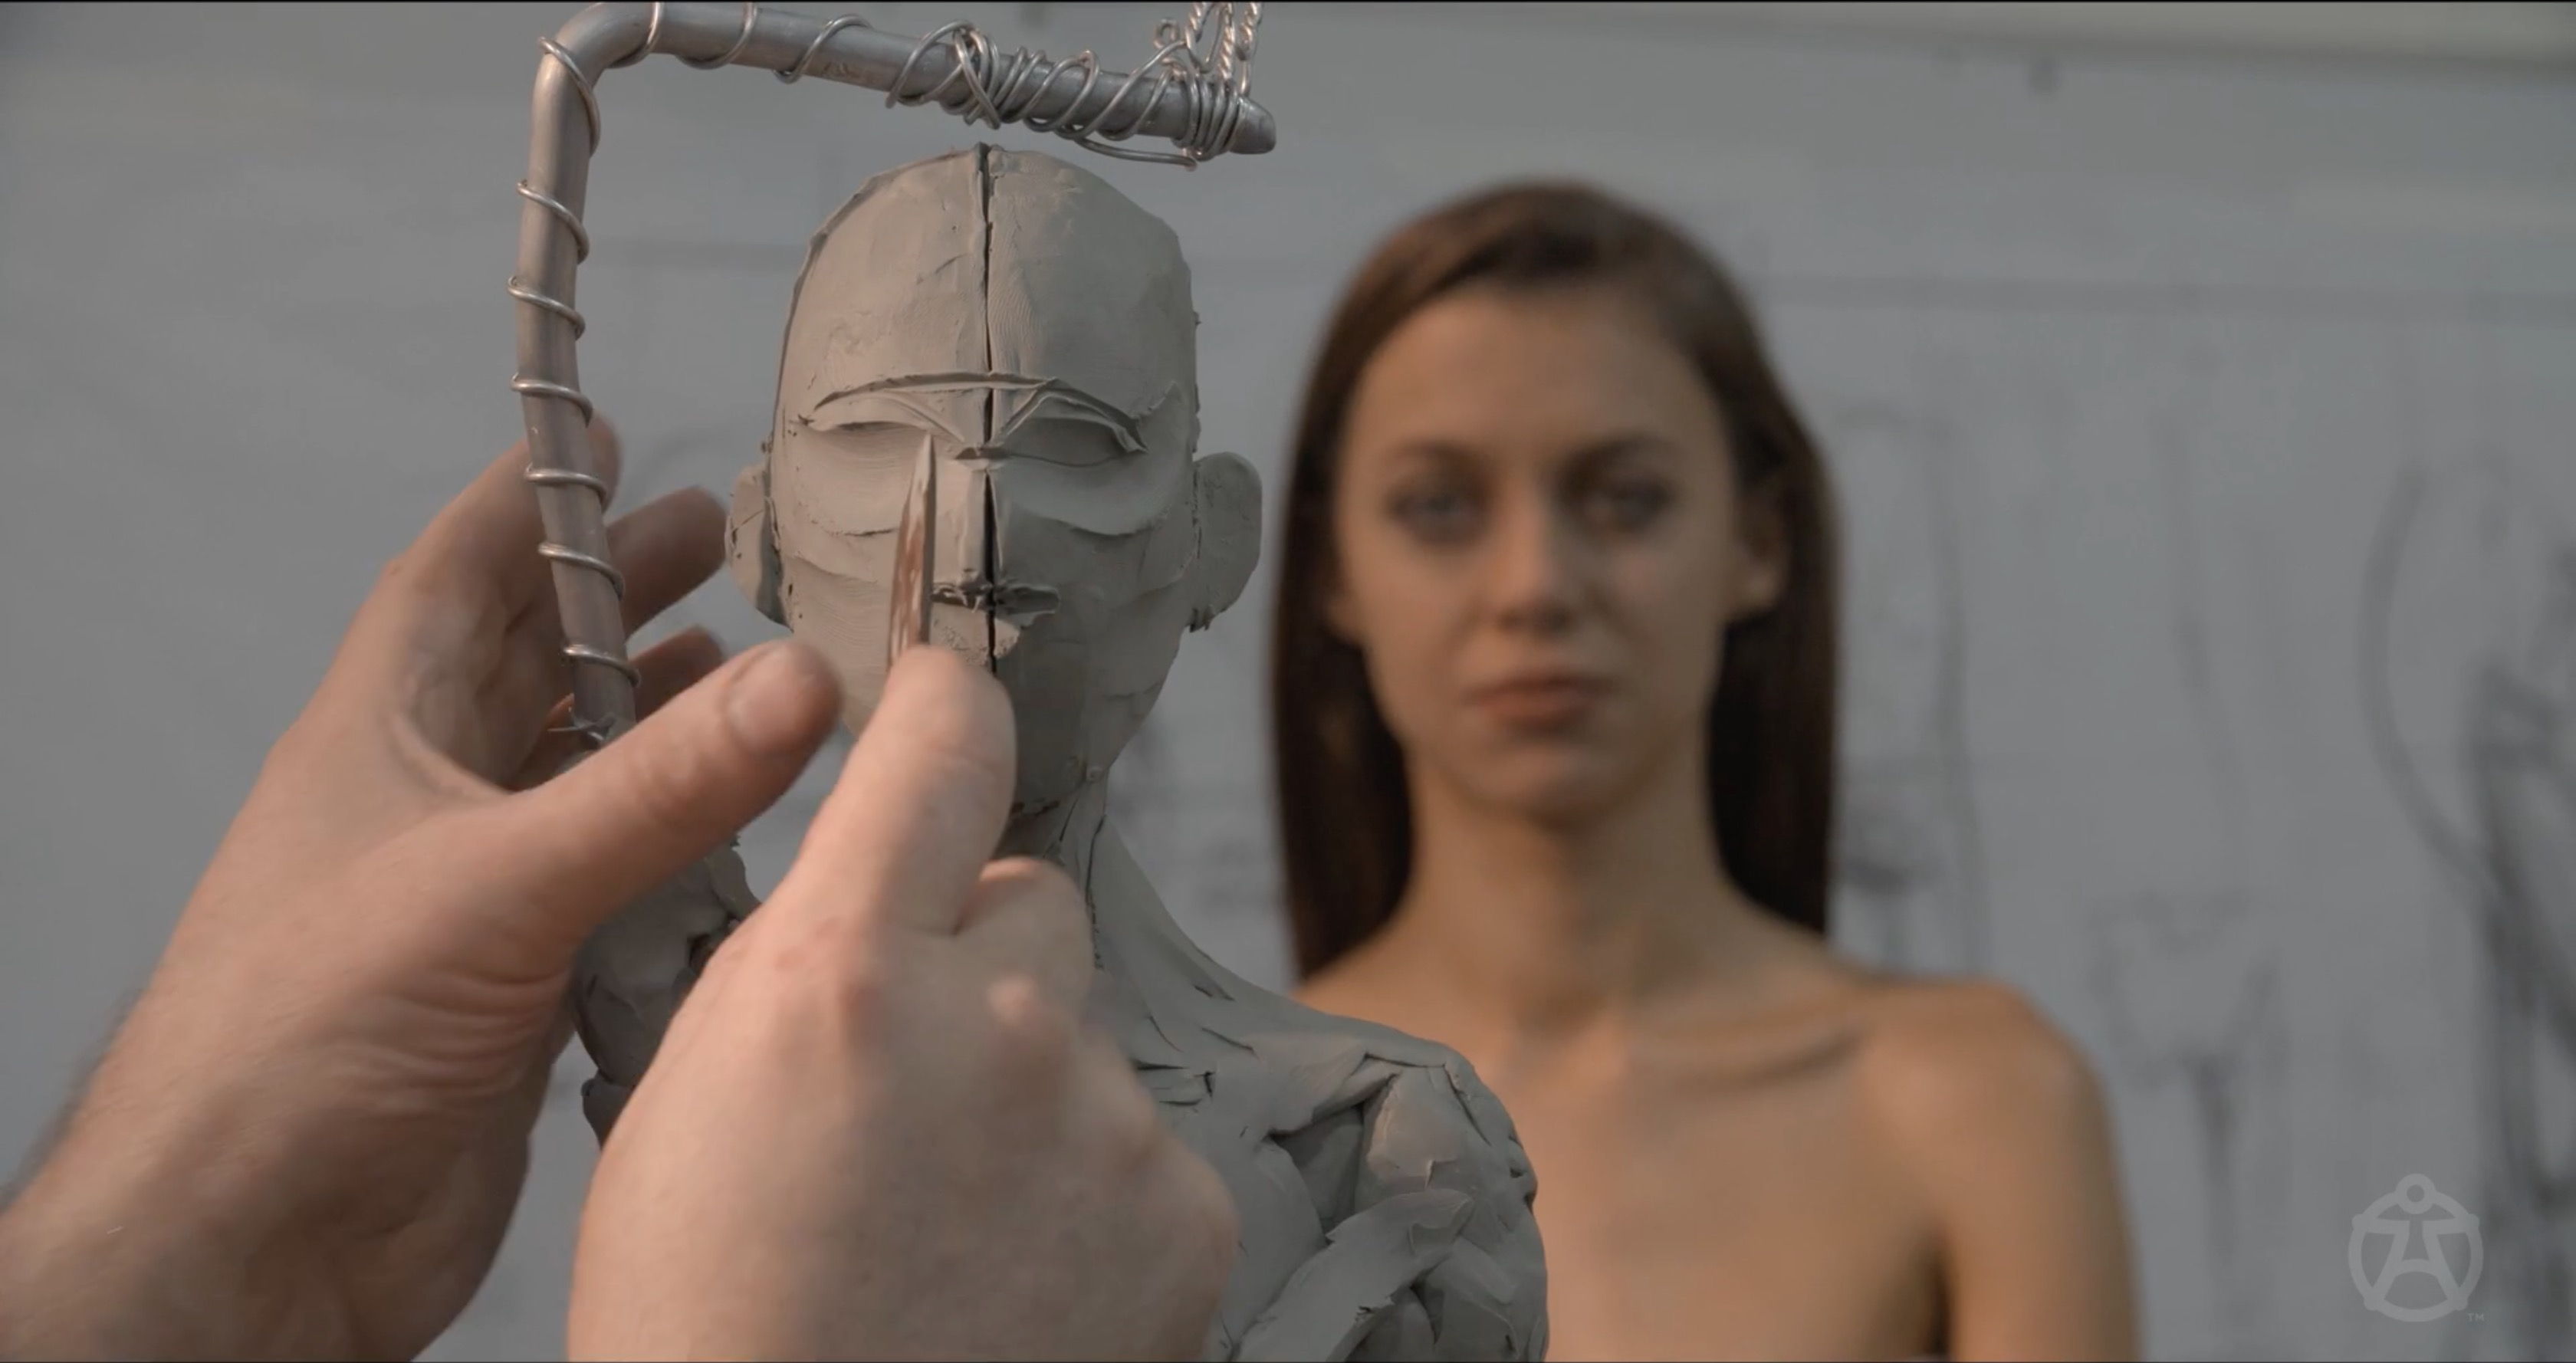 andrew cawrse live sculpting  u2013 thinking animation